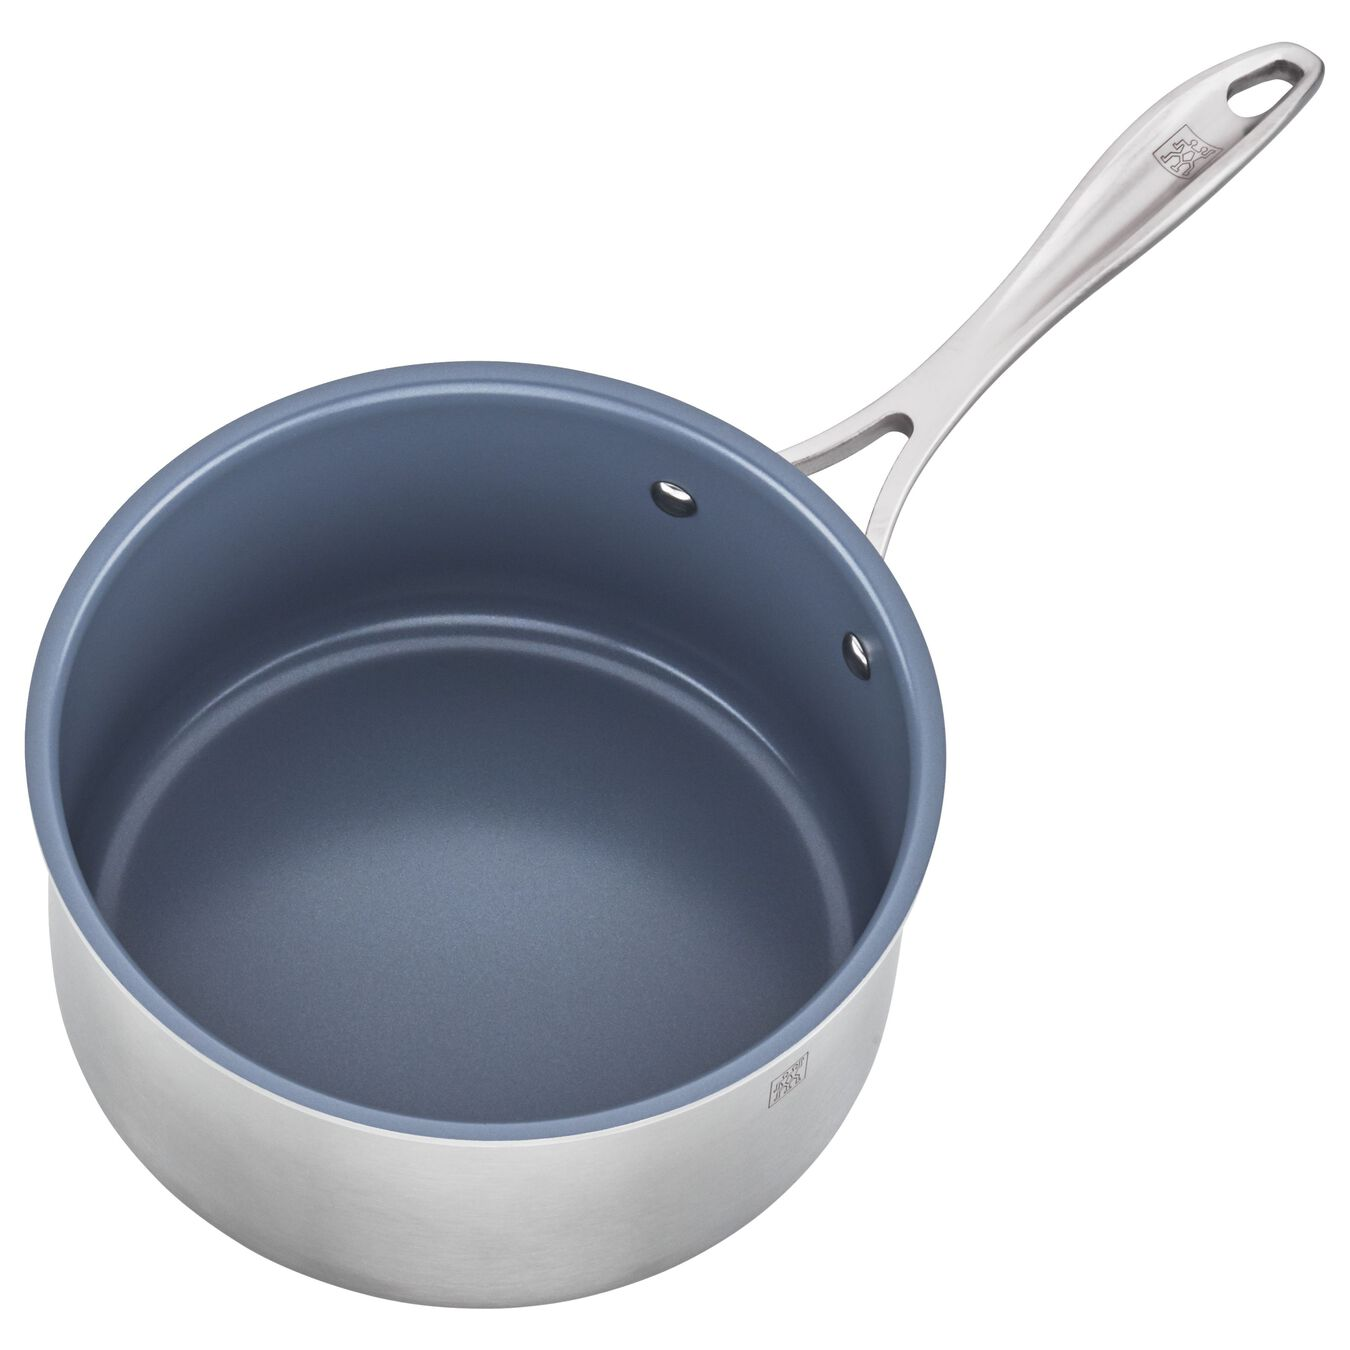 3-ply 3-qt Stainless Steel Ceramic Nonstick Saucepan,,large 3